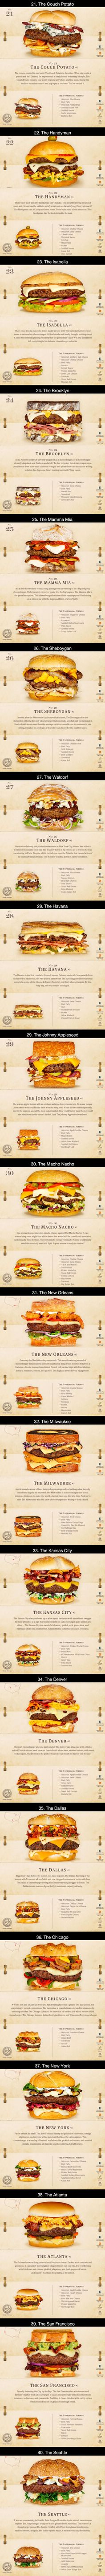 40 Glorious Burger Combinations Part 2